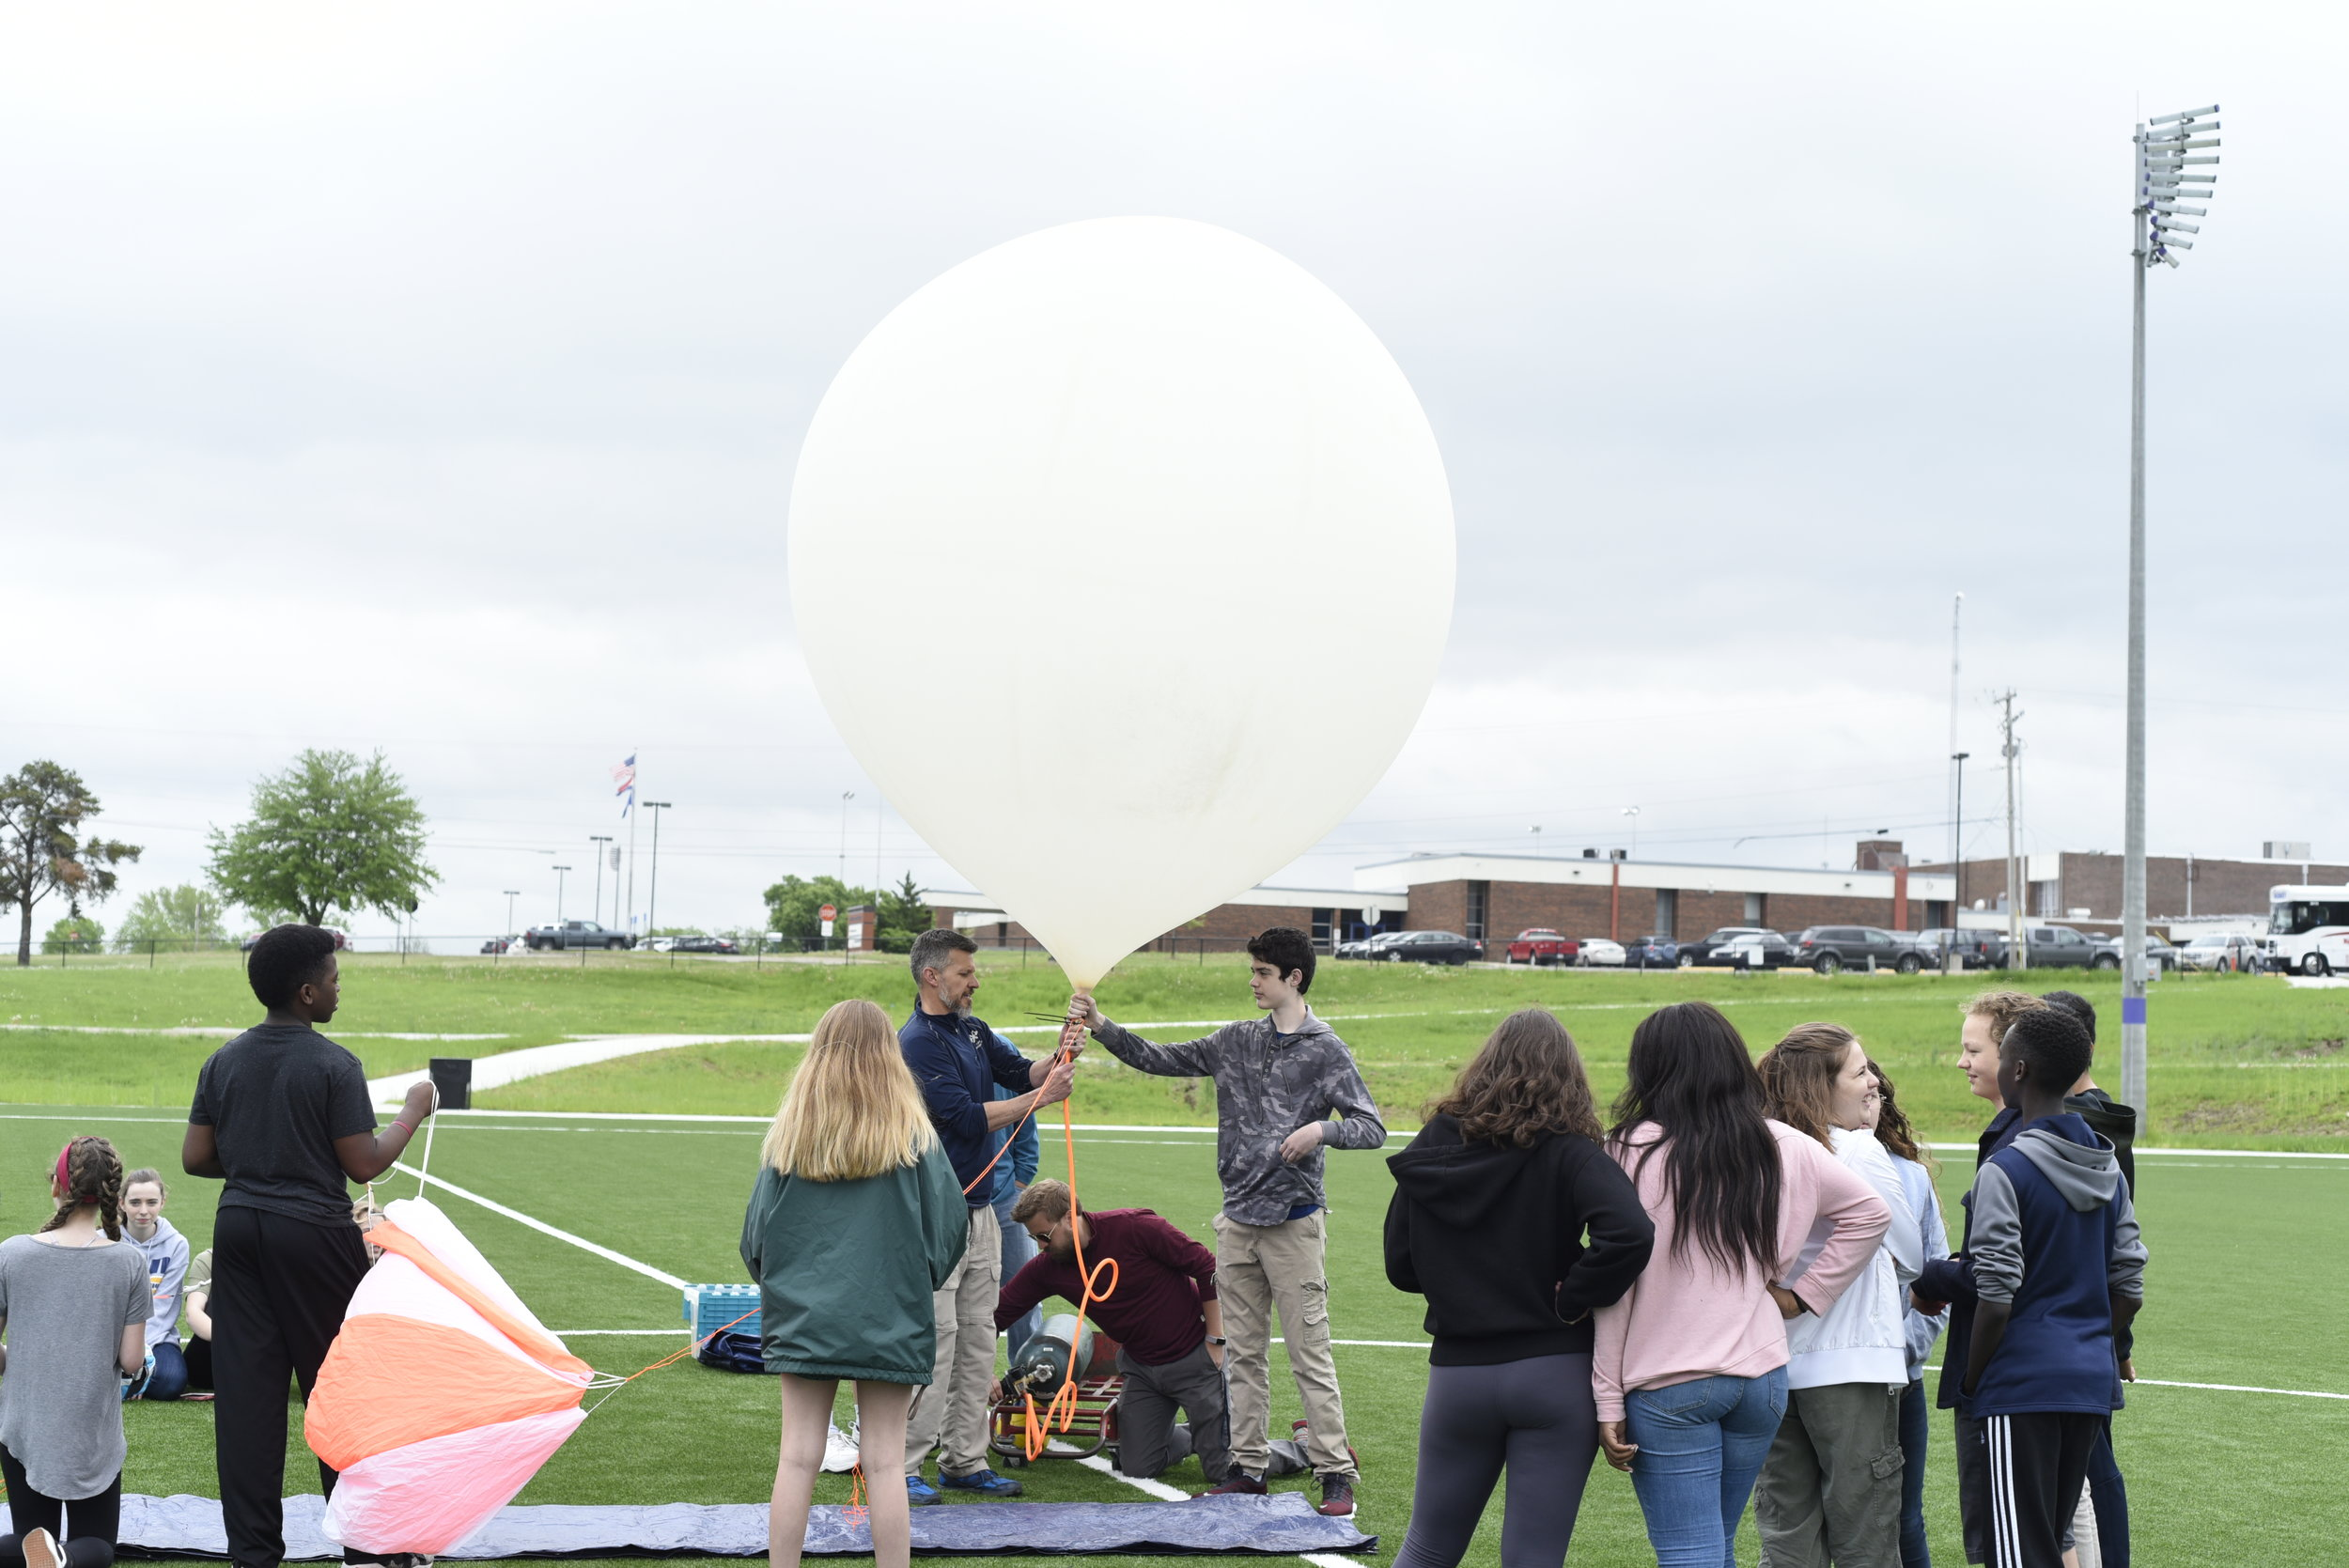 The weather balloon filling up with helium, getting ready for takeoff.